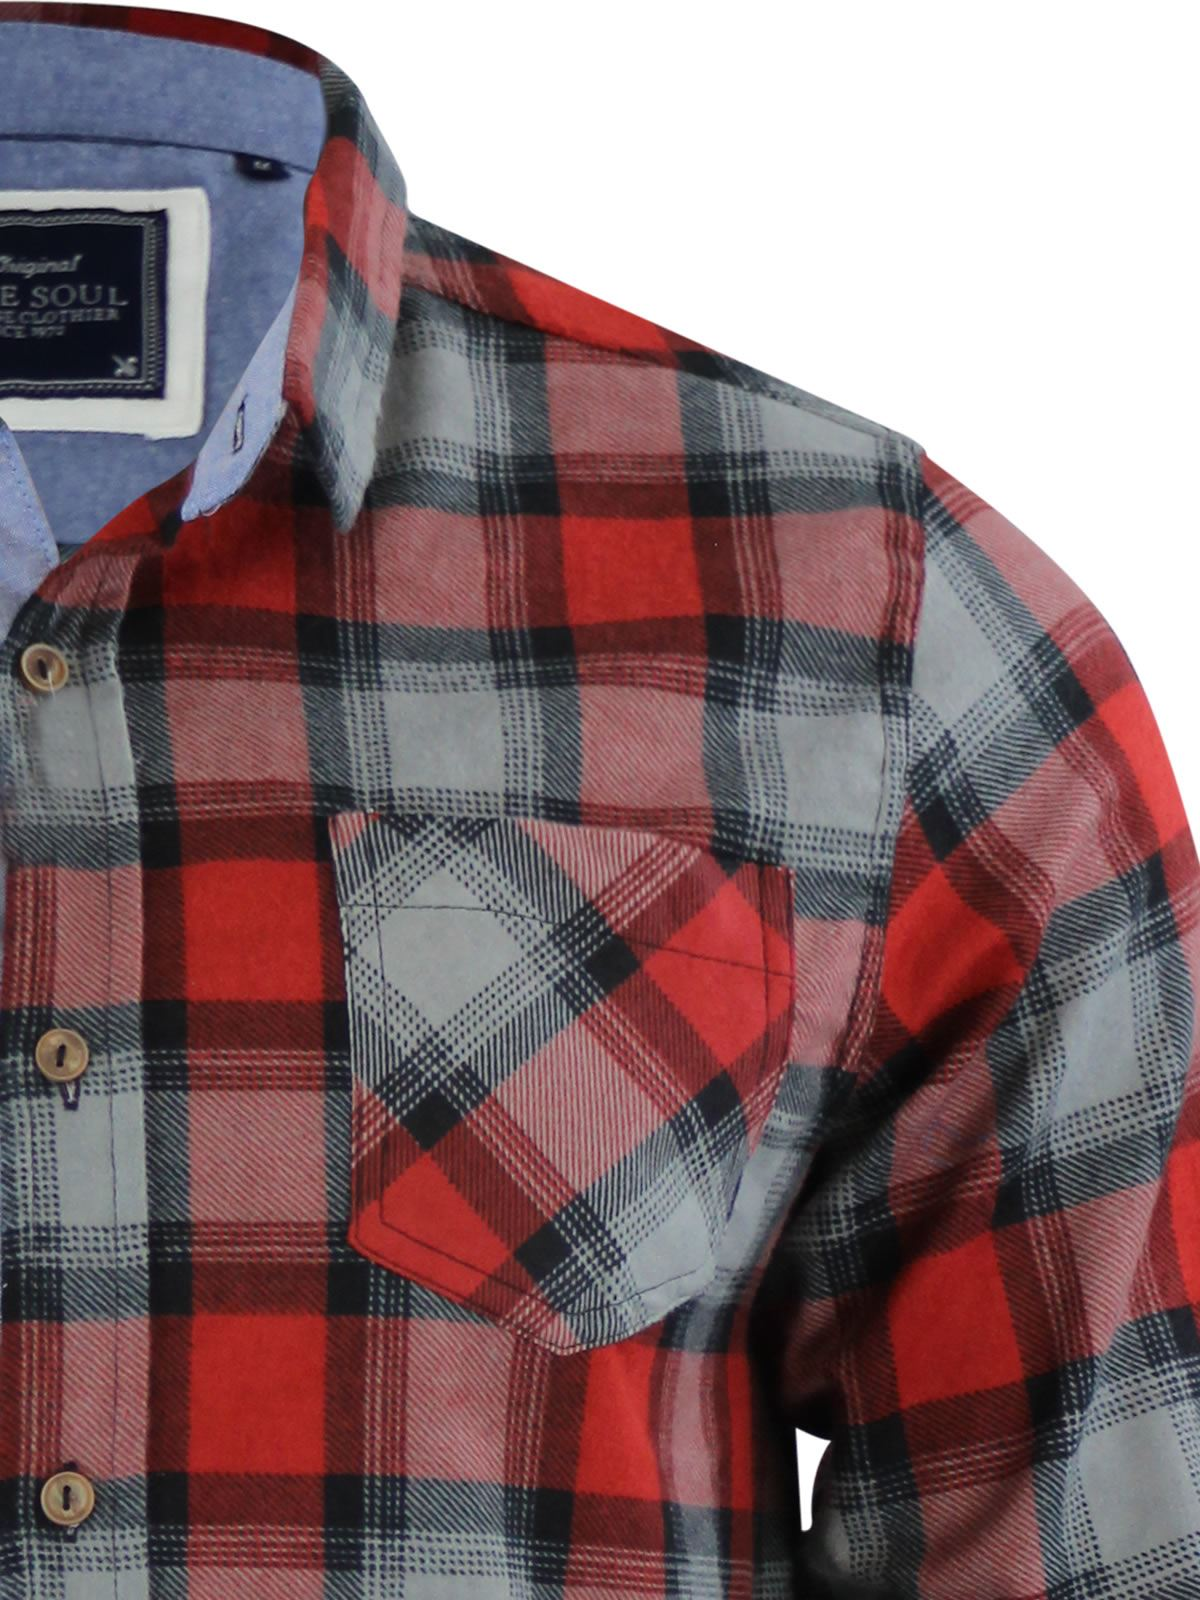 Mens-Check-Shirt-Brave-Soul-Flannel-Brushed-Cotton-Long-Sleeve-Casual-Top thumbnail 43